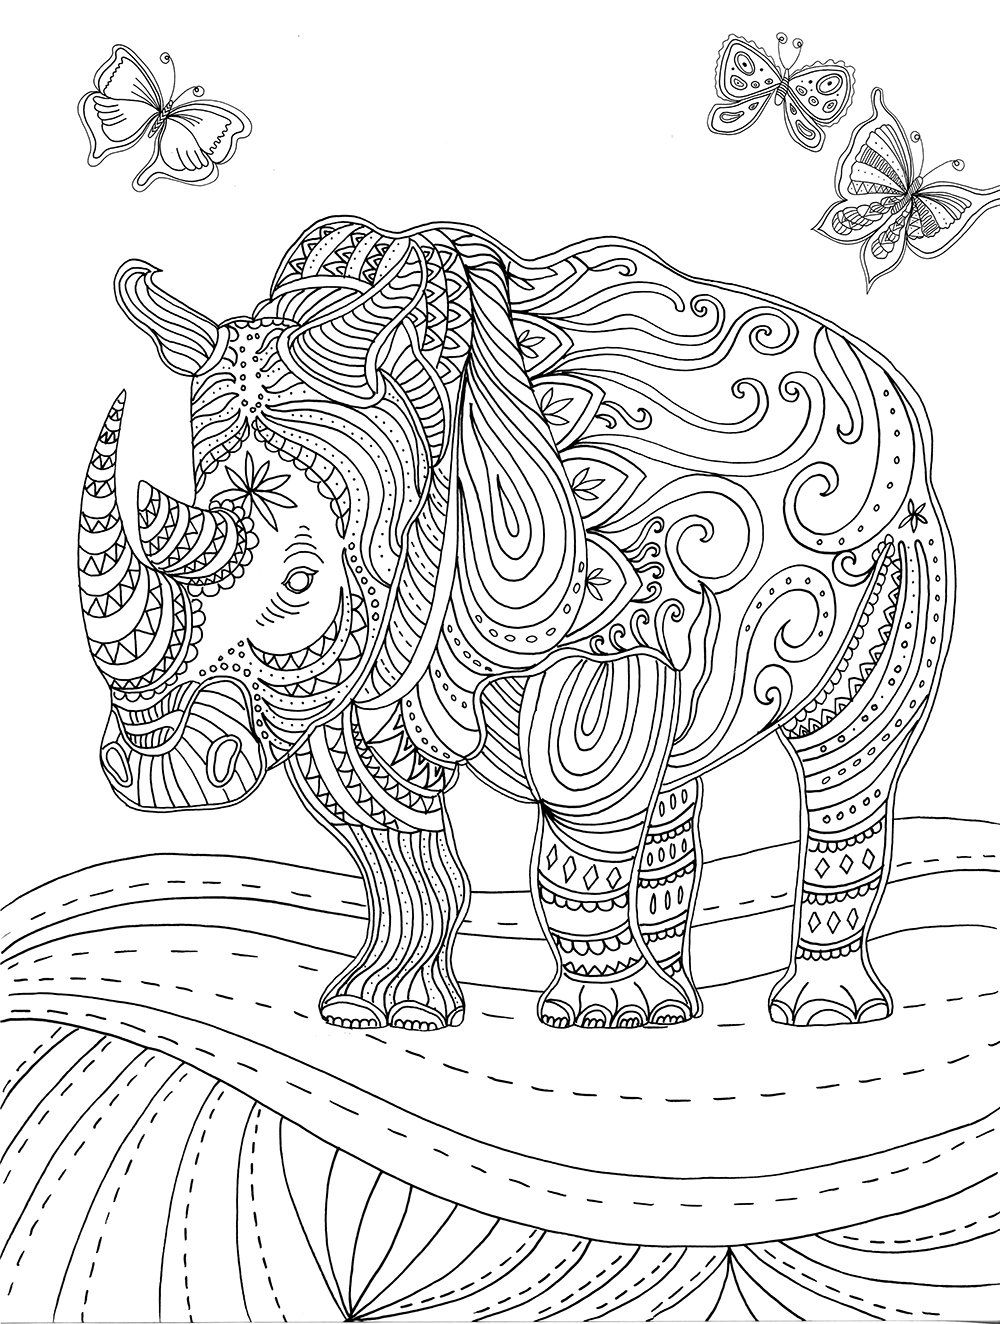 Mandala coloring pages amazon - Fantastisches Reich Der Tiere Meditatives Ausmalen Amazon De Marielle Enders B Cher Colouring Pagescoloring